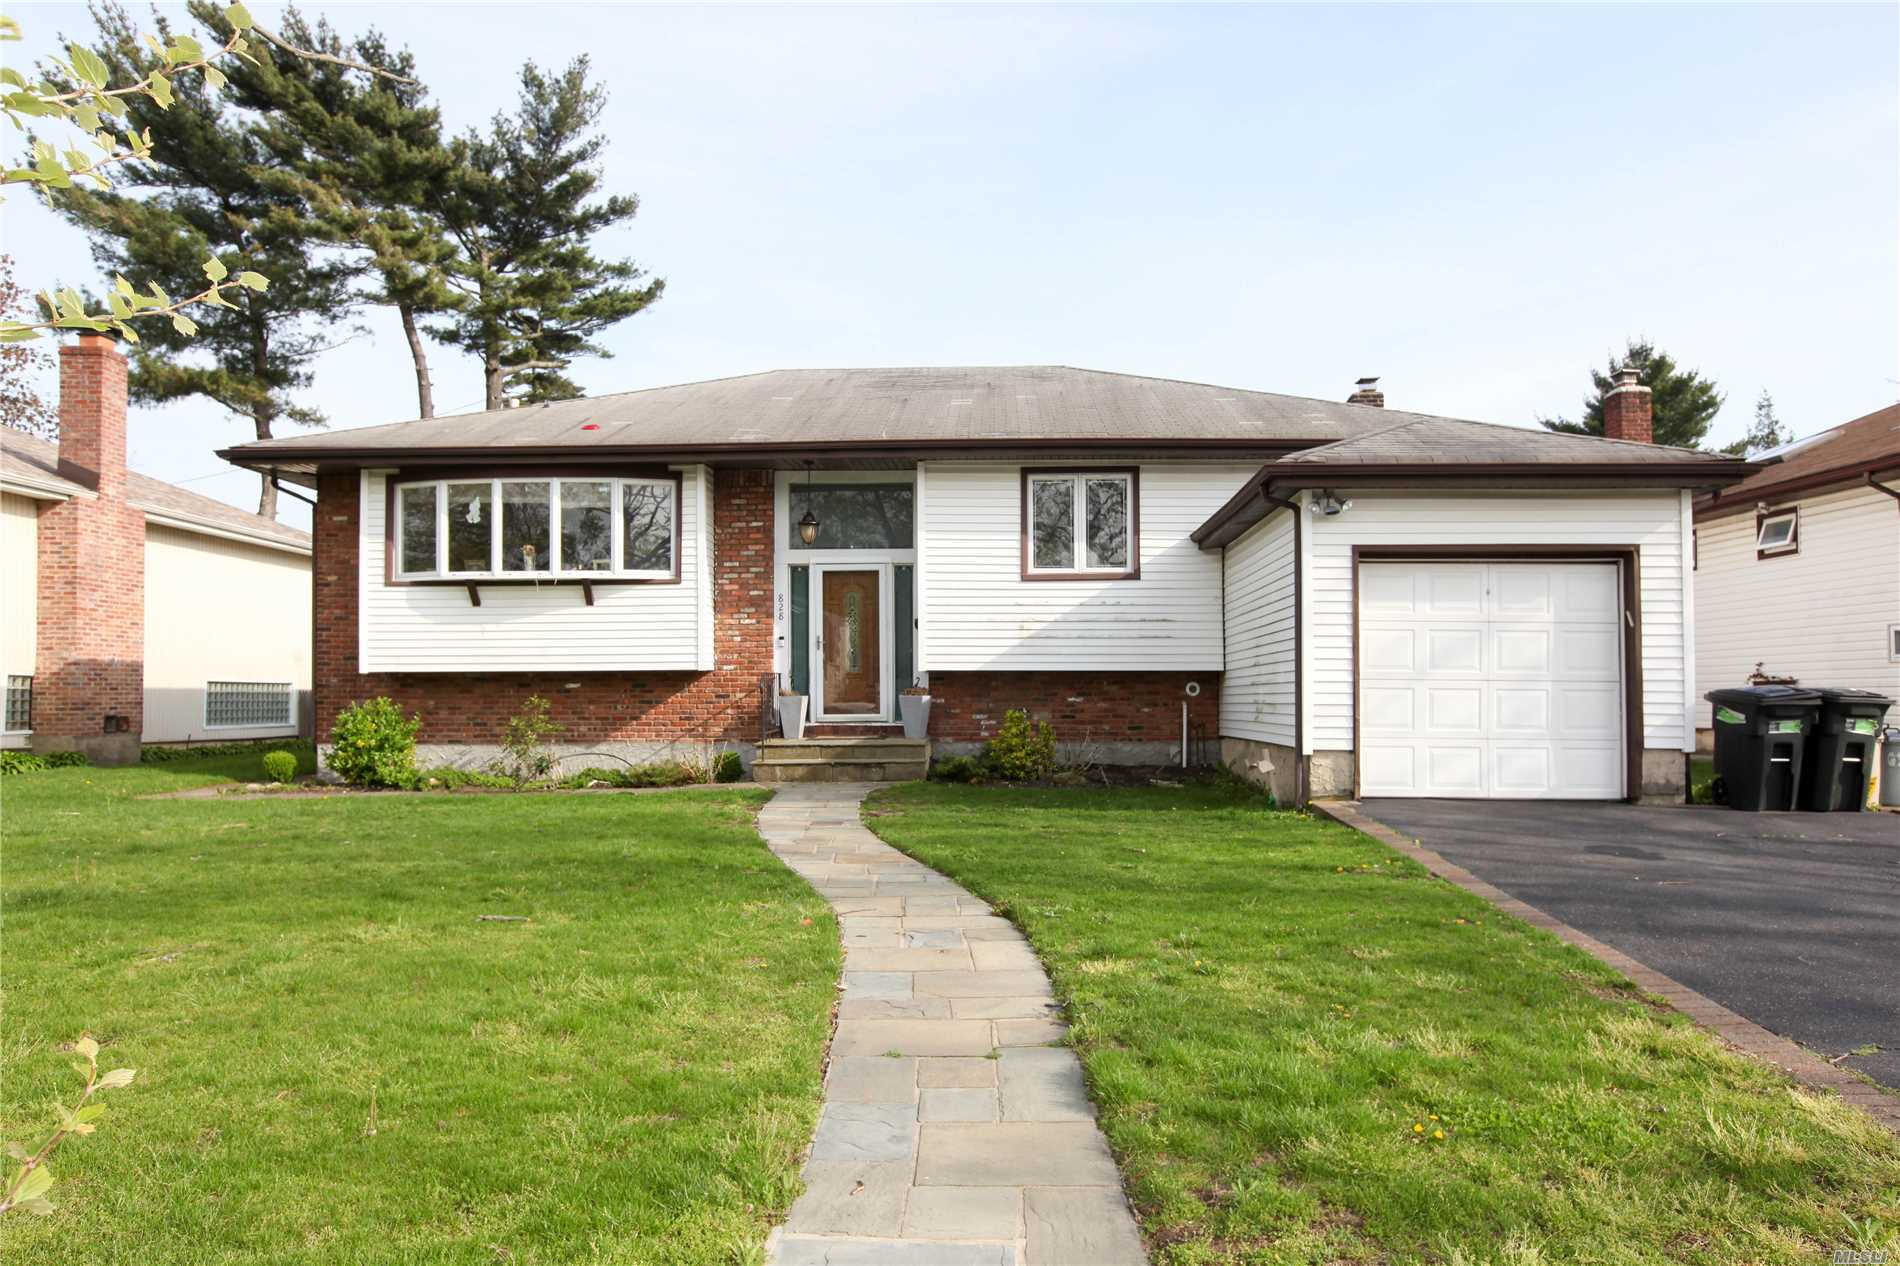 Beautiful Modern Hi Ranch, 6 Bedrooms, 3 Full Baths, Newly Renovated Eat In Kitchen, Large Formal Dining Room, Living Room, Huge Den, Playroom, Must See!